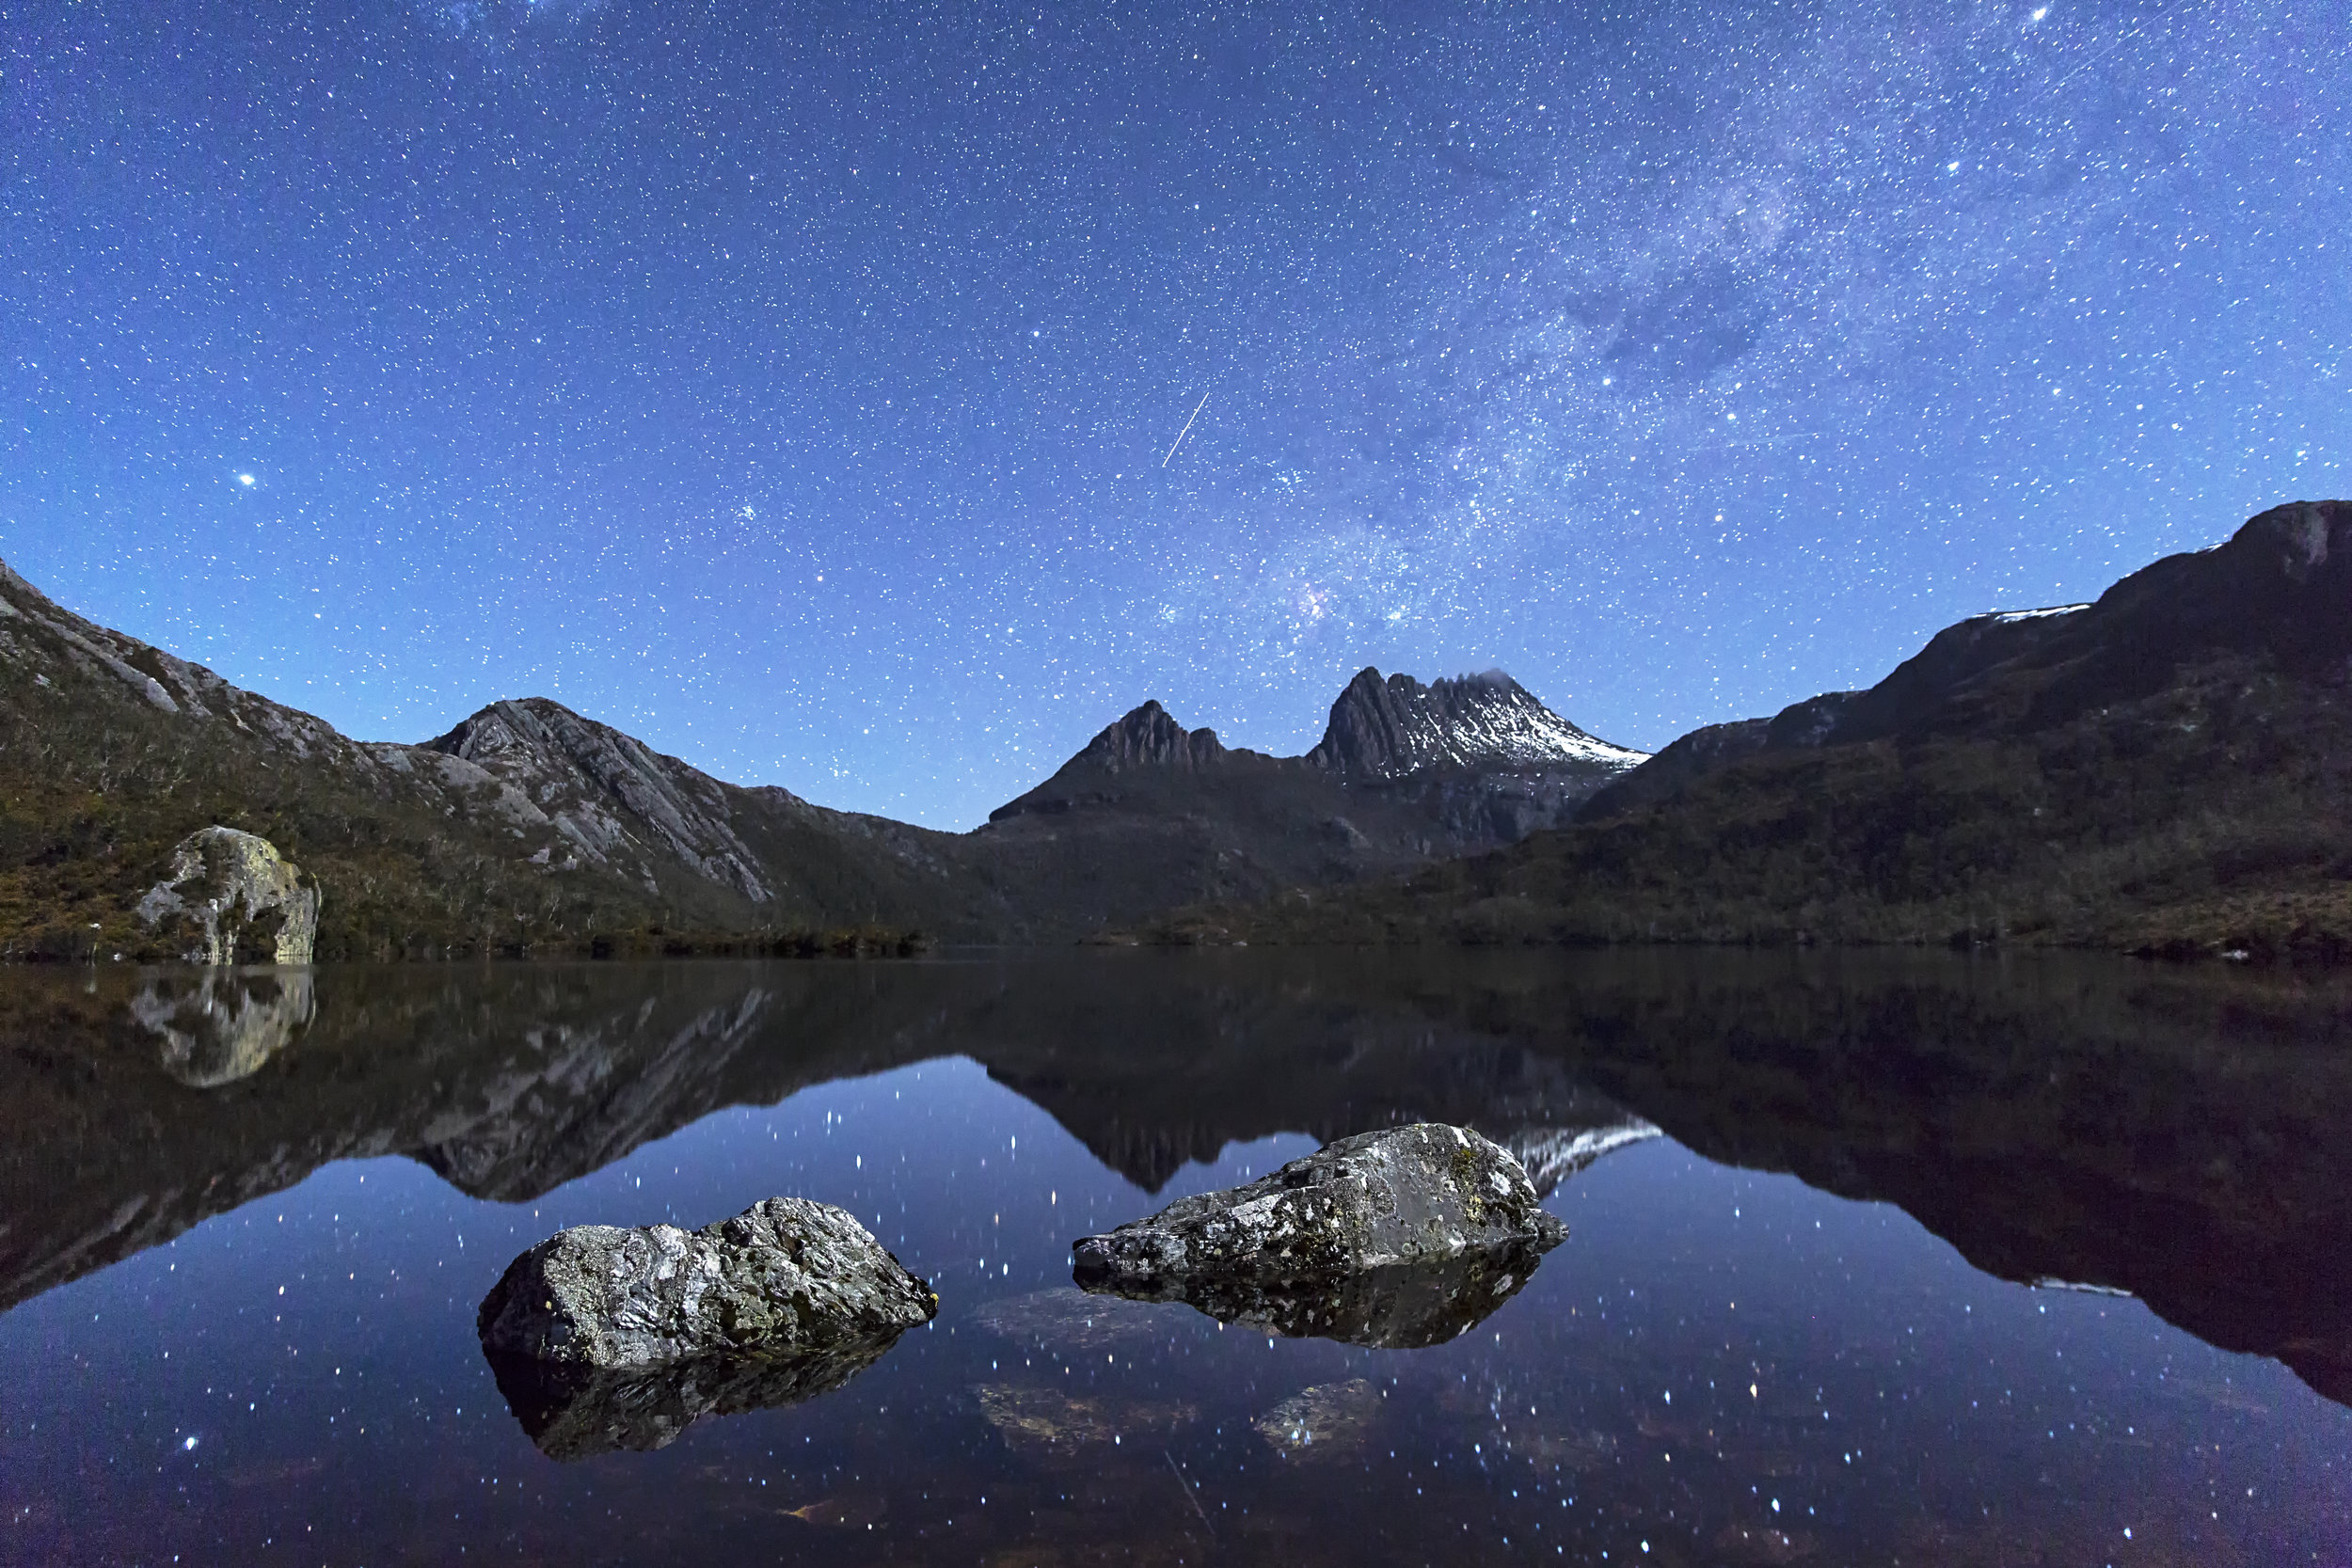 Moonlit_Cradle_Mountain_TAS_A.Dyer.jpg